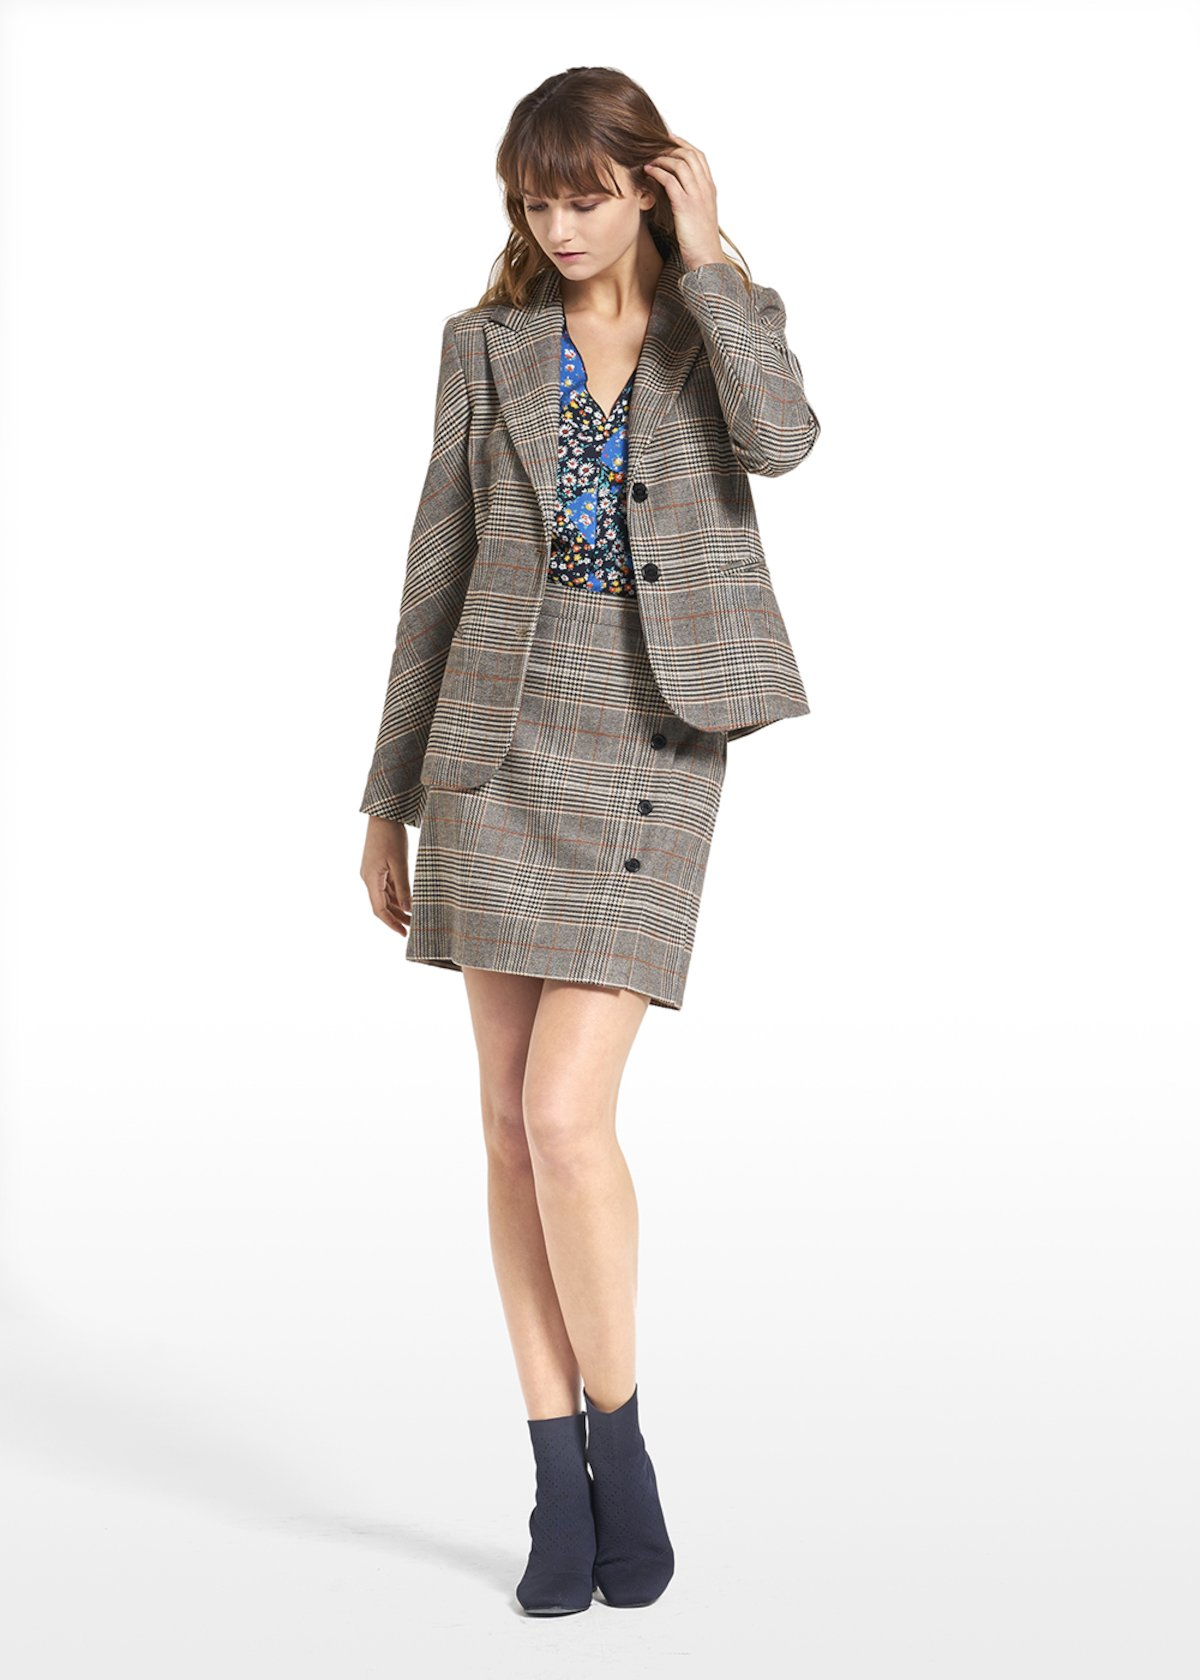 Patterned prince of Wales jacket Giulia - Beige / Black Fantasia - Woman - Category image